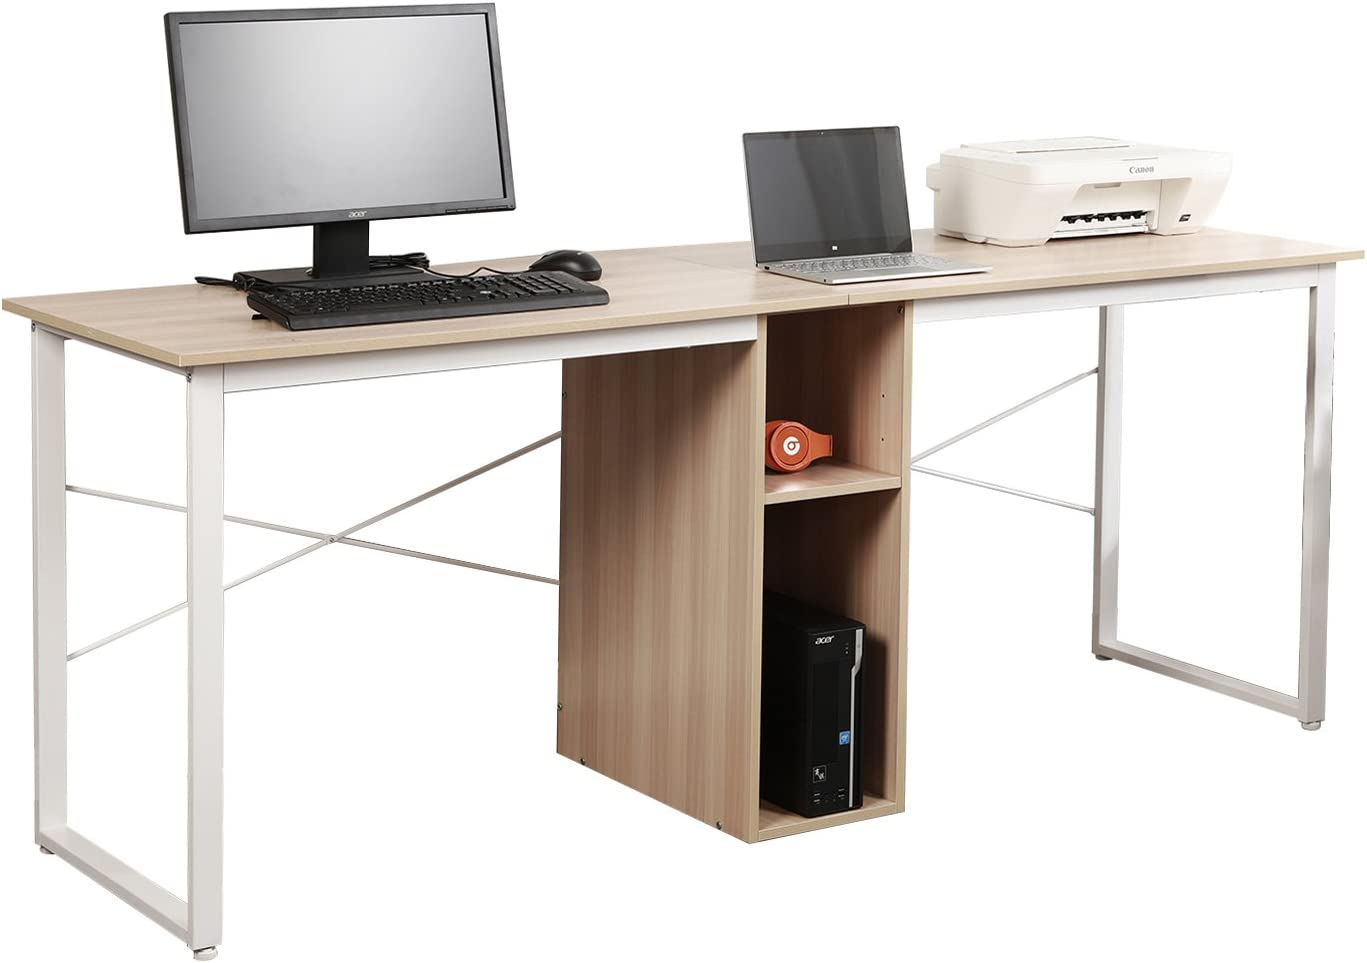 Soges 2 Person Home Office Desk 78inches Large Double Workstation Desk Writing Desk With Storage White Oak Hz011 200 Mo Ca Amazon Ca Home Kitchen